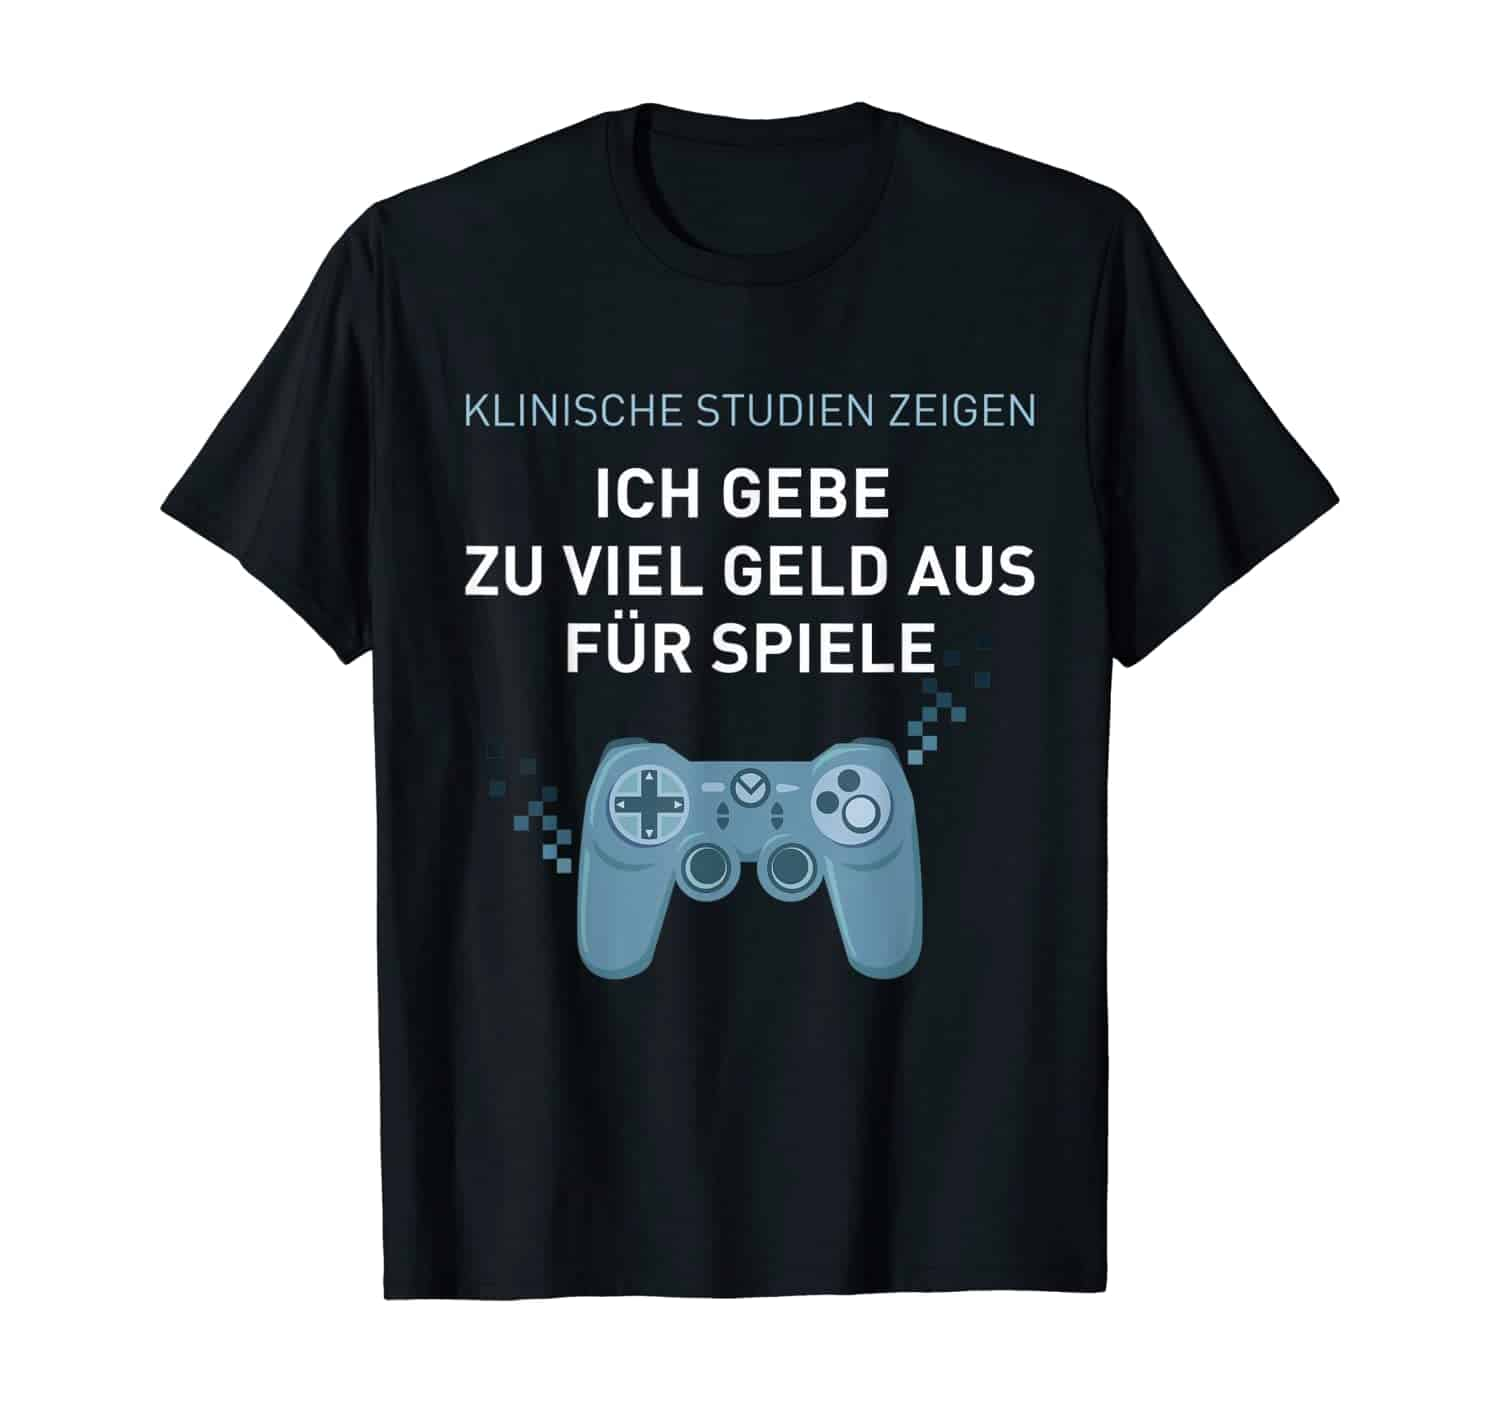 Gamer Girl, Gamer Boy, Zocker, Nerd, Gamer, Konsole, PC, Geek, PC Spieler, Zockerin, Pro Gamer, Computerspiele, Videospiele, Games, Computergame, Computerfreak, Gamer geschenk, Zocker Party, Gamerin, Gamergirl, Geschenkidee, Geschenk, T-Shirt design, T-Shirt Designer